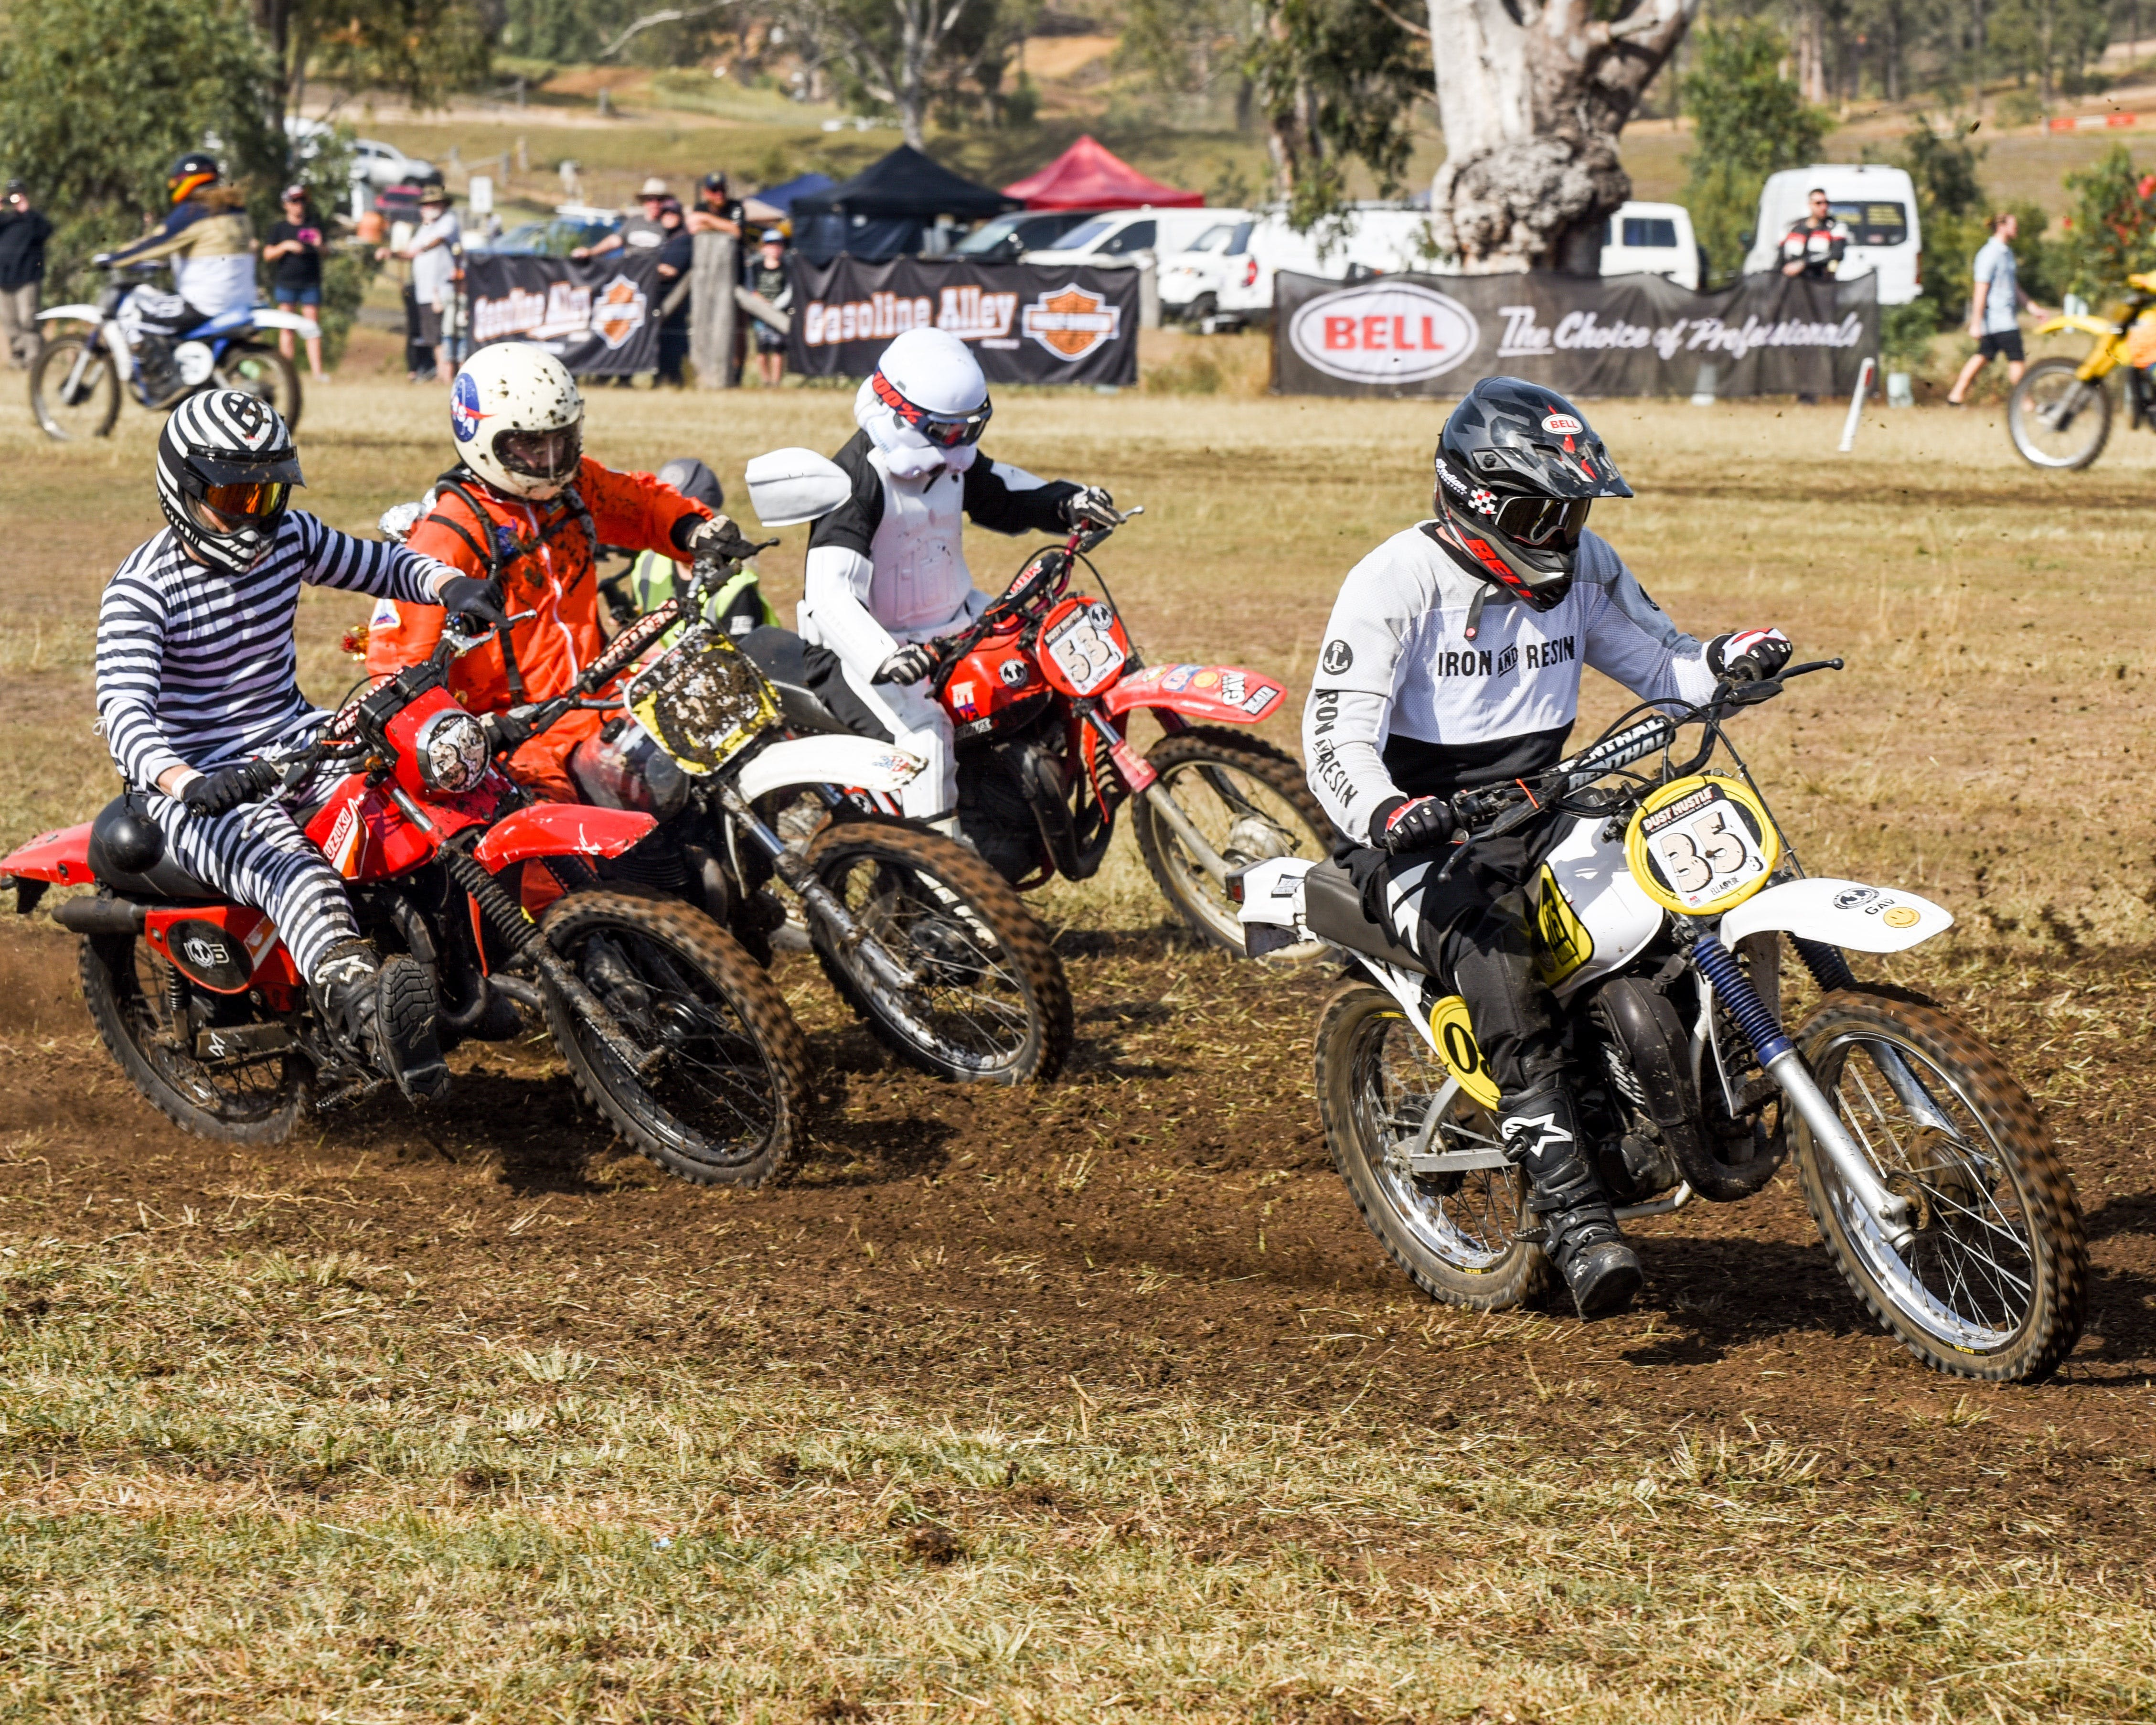 Dust Hustle Queensland Moto Park - Accommodation Tasmania